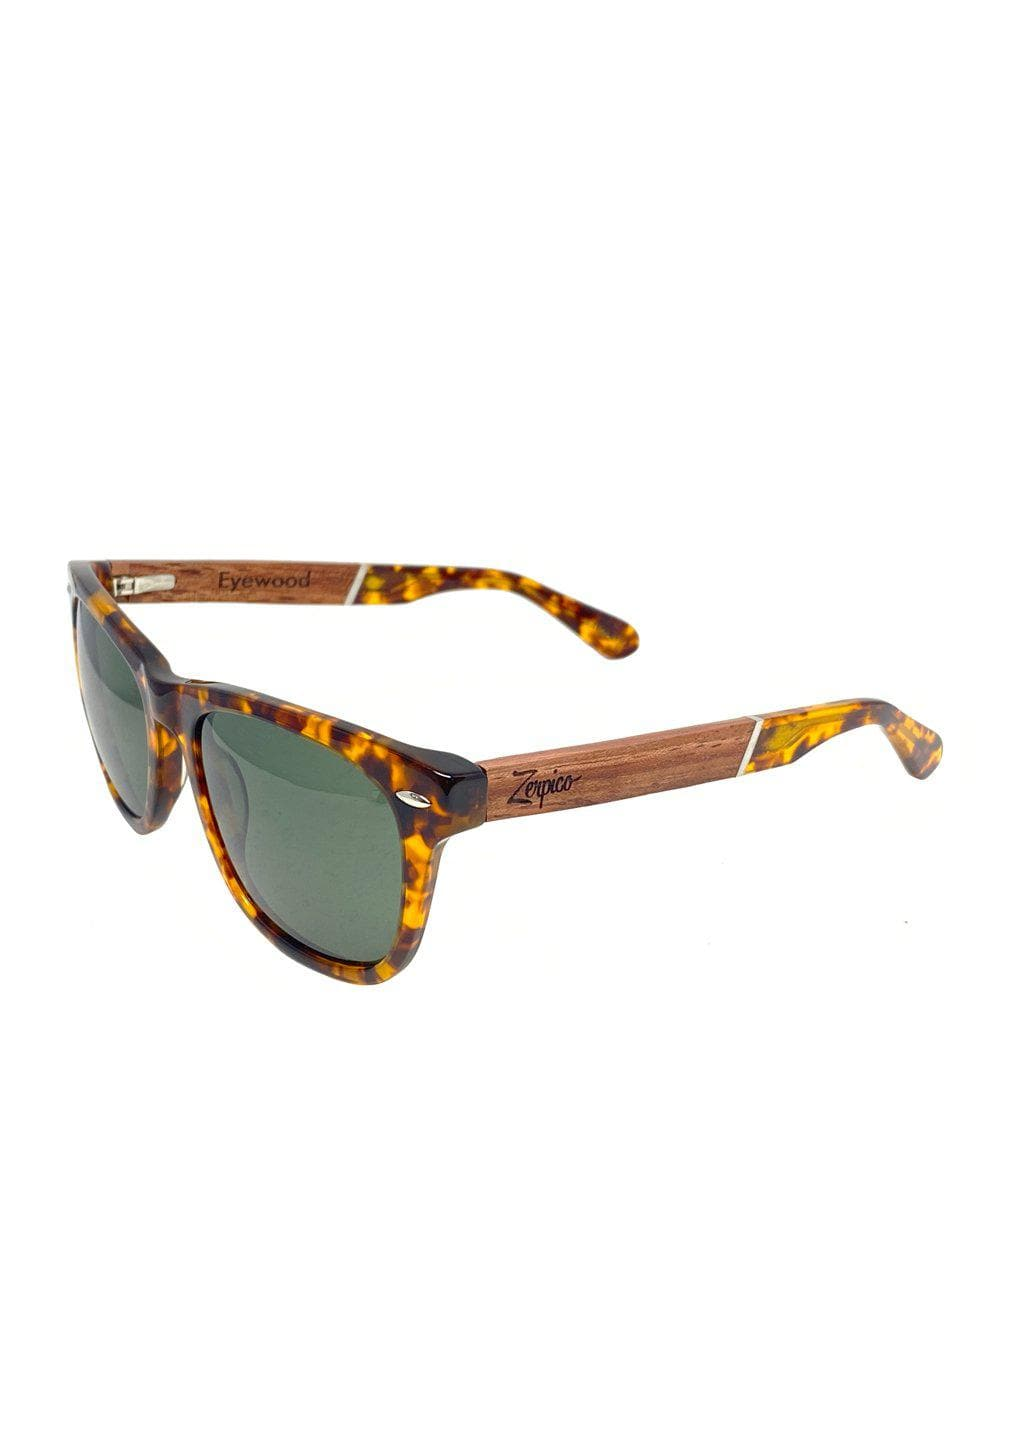 Eyewood Wayfarers - Fusion - Lynx - A mix of acetate and wood makes theses sunglasses unique. From the side.